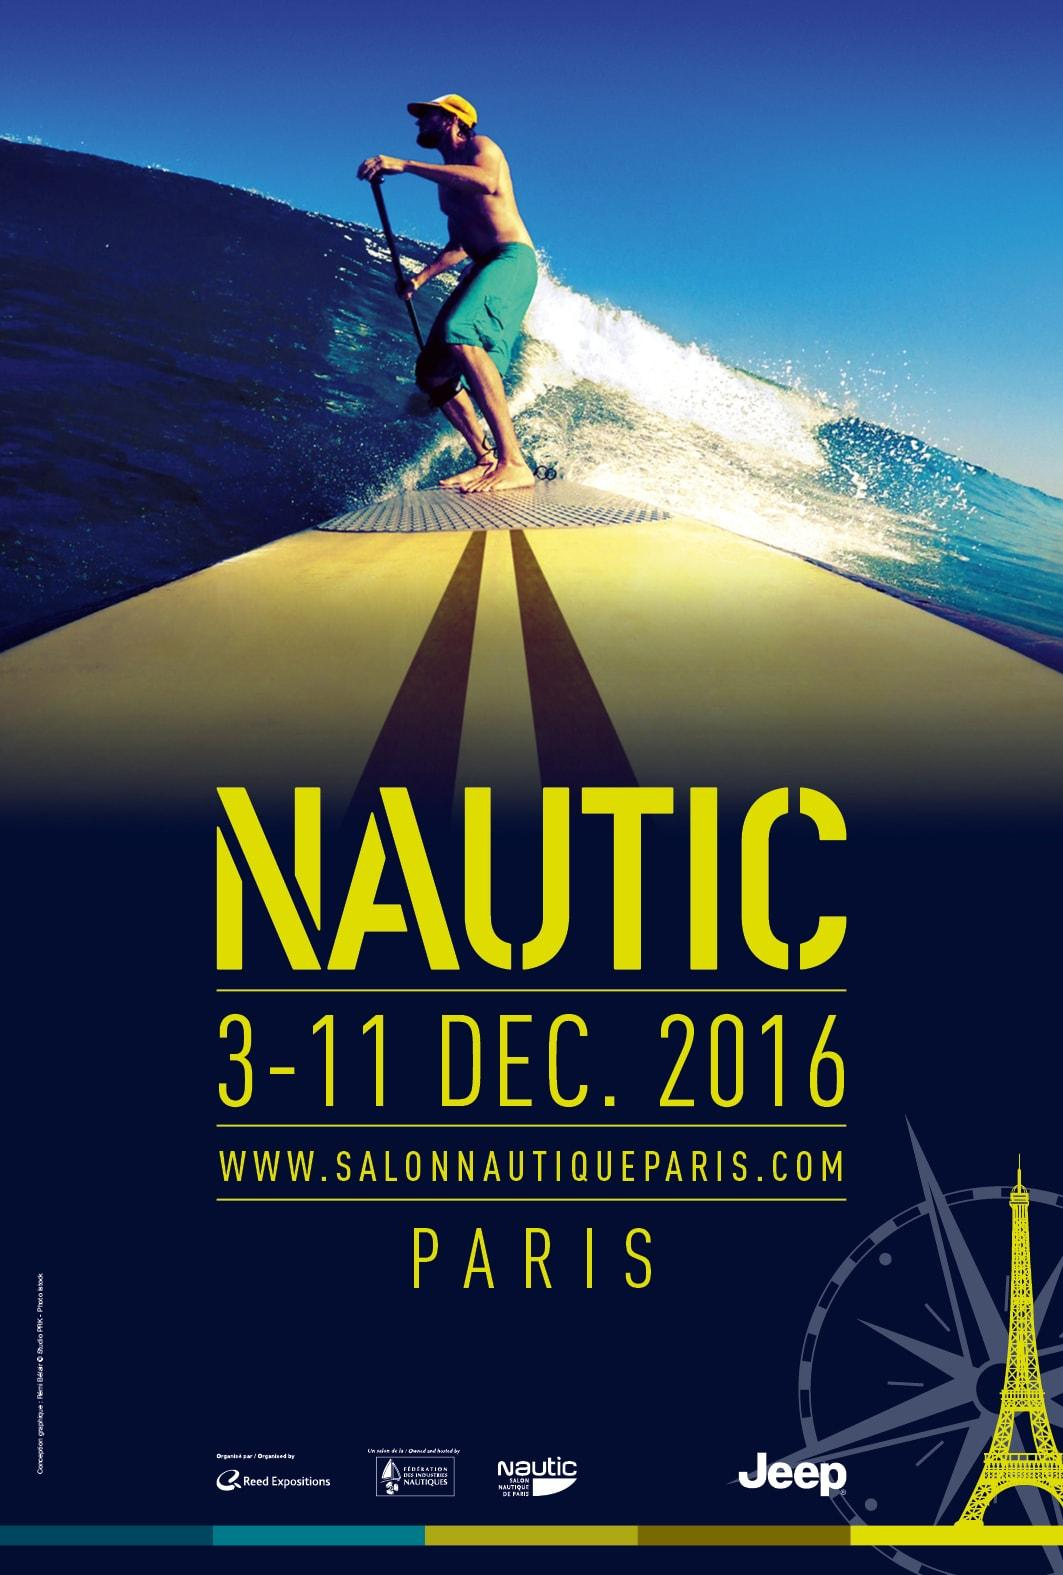 Salon Nautic Paris décembre 2016